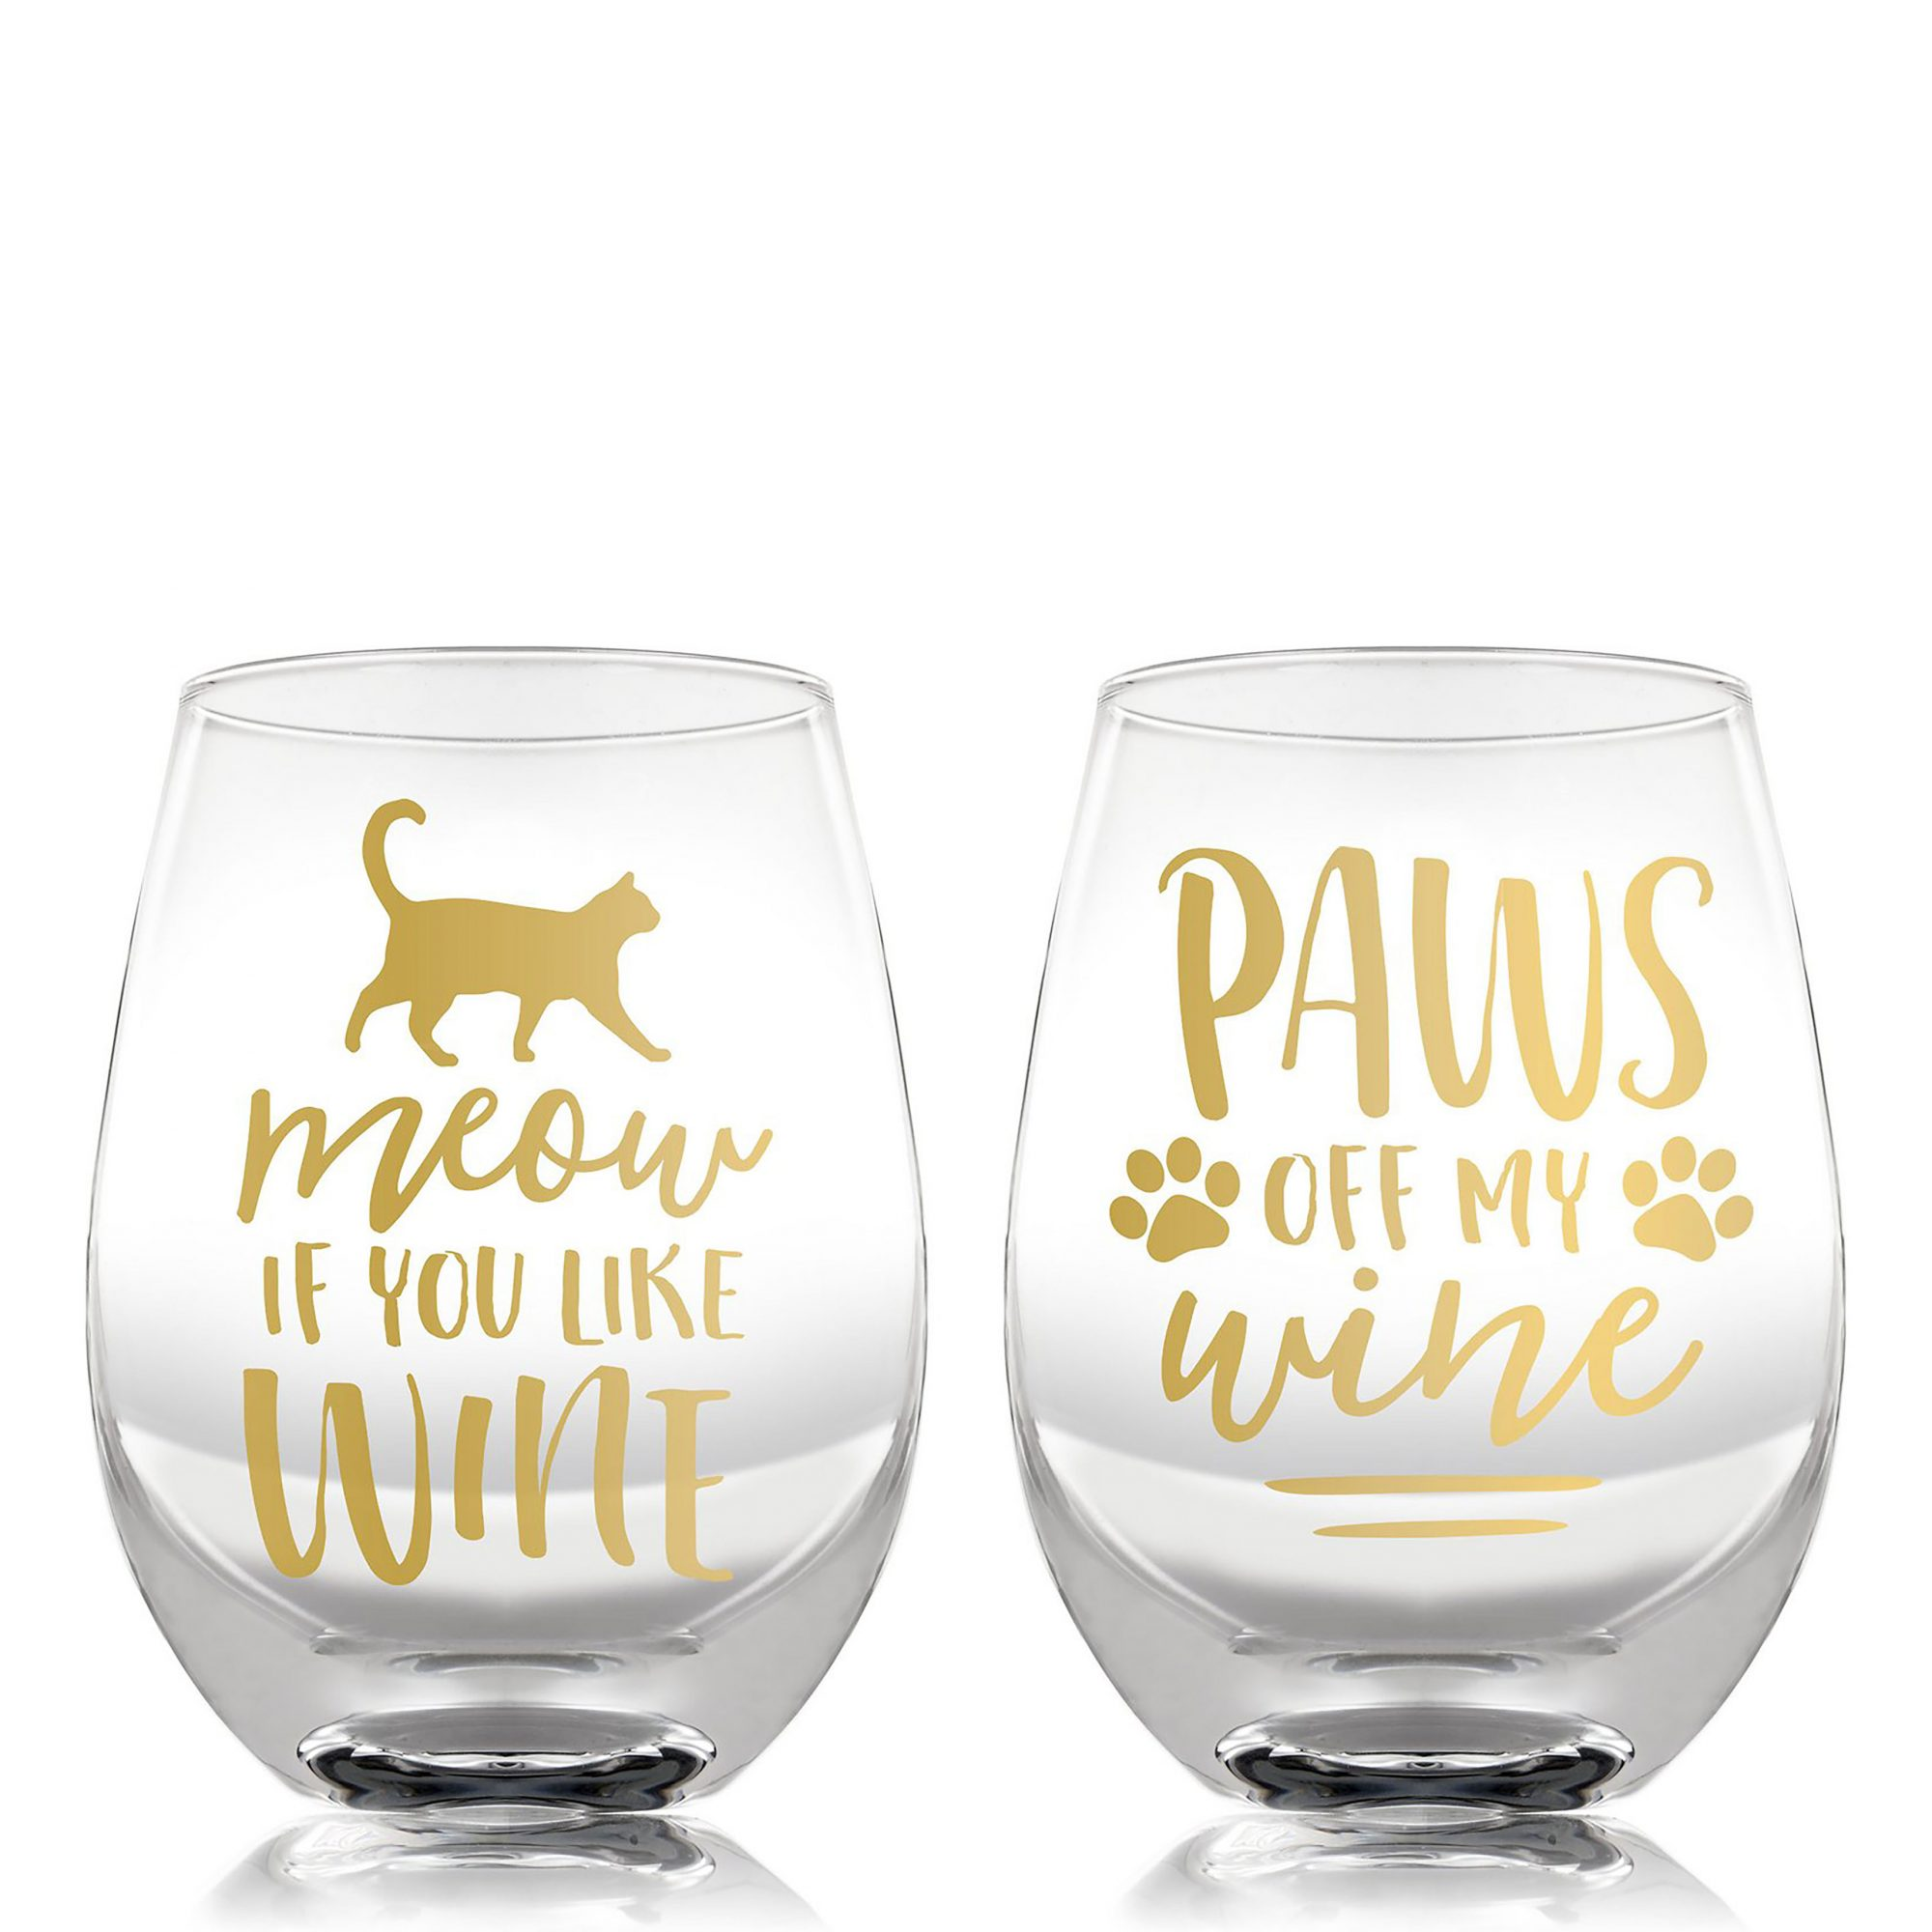 Set of two stemless wine glasses with gold lettering